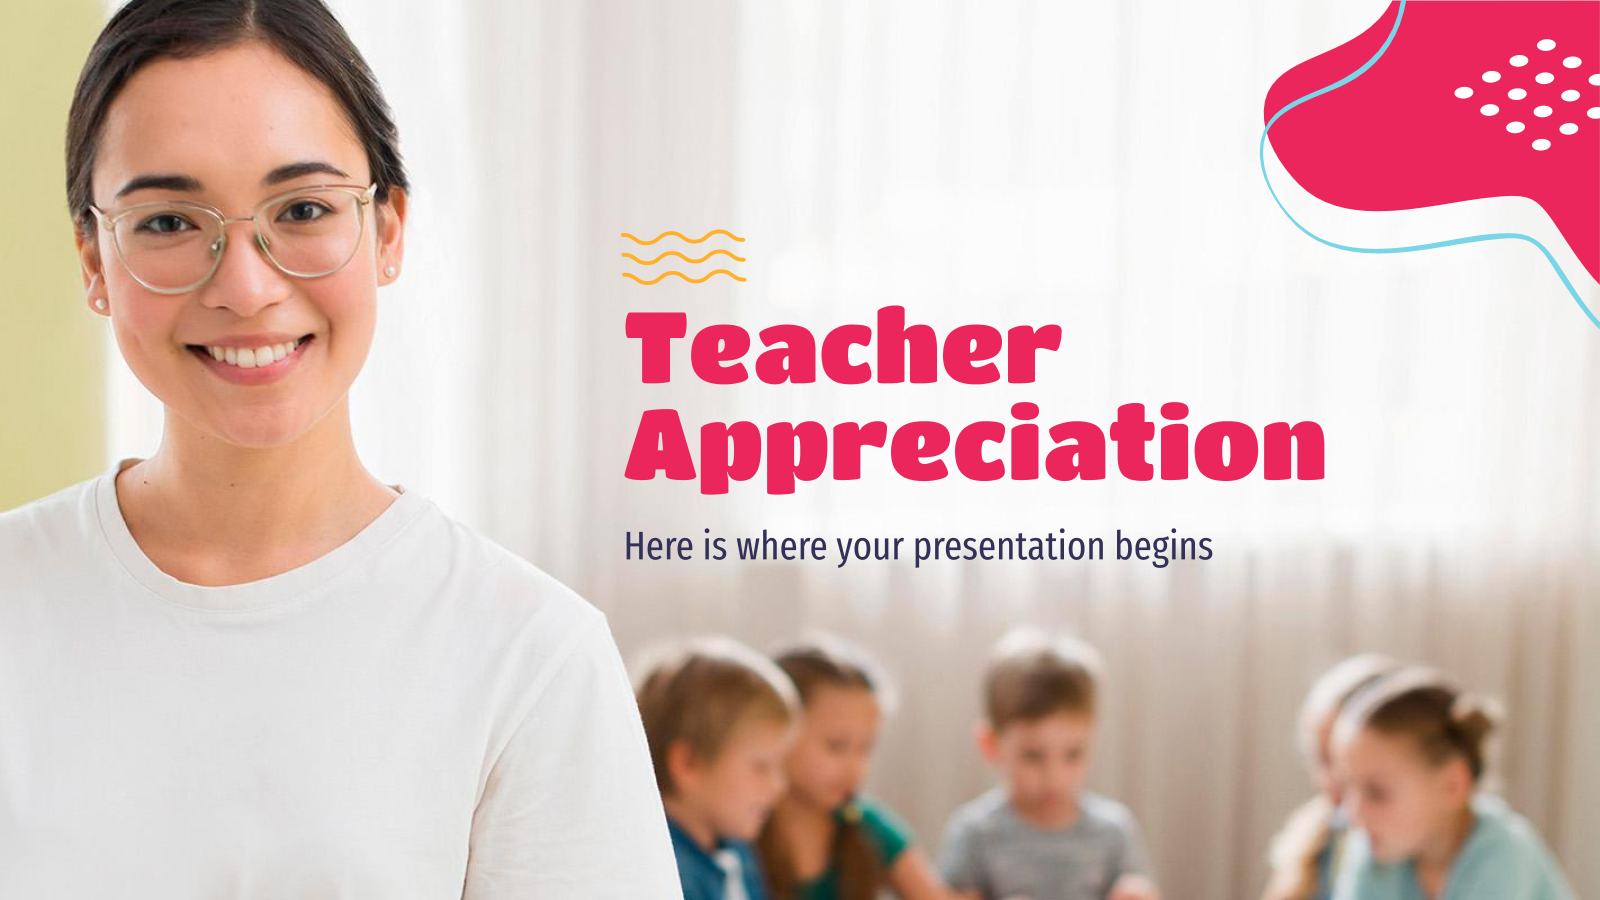 Teacher Appreciation presentation template